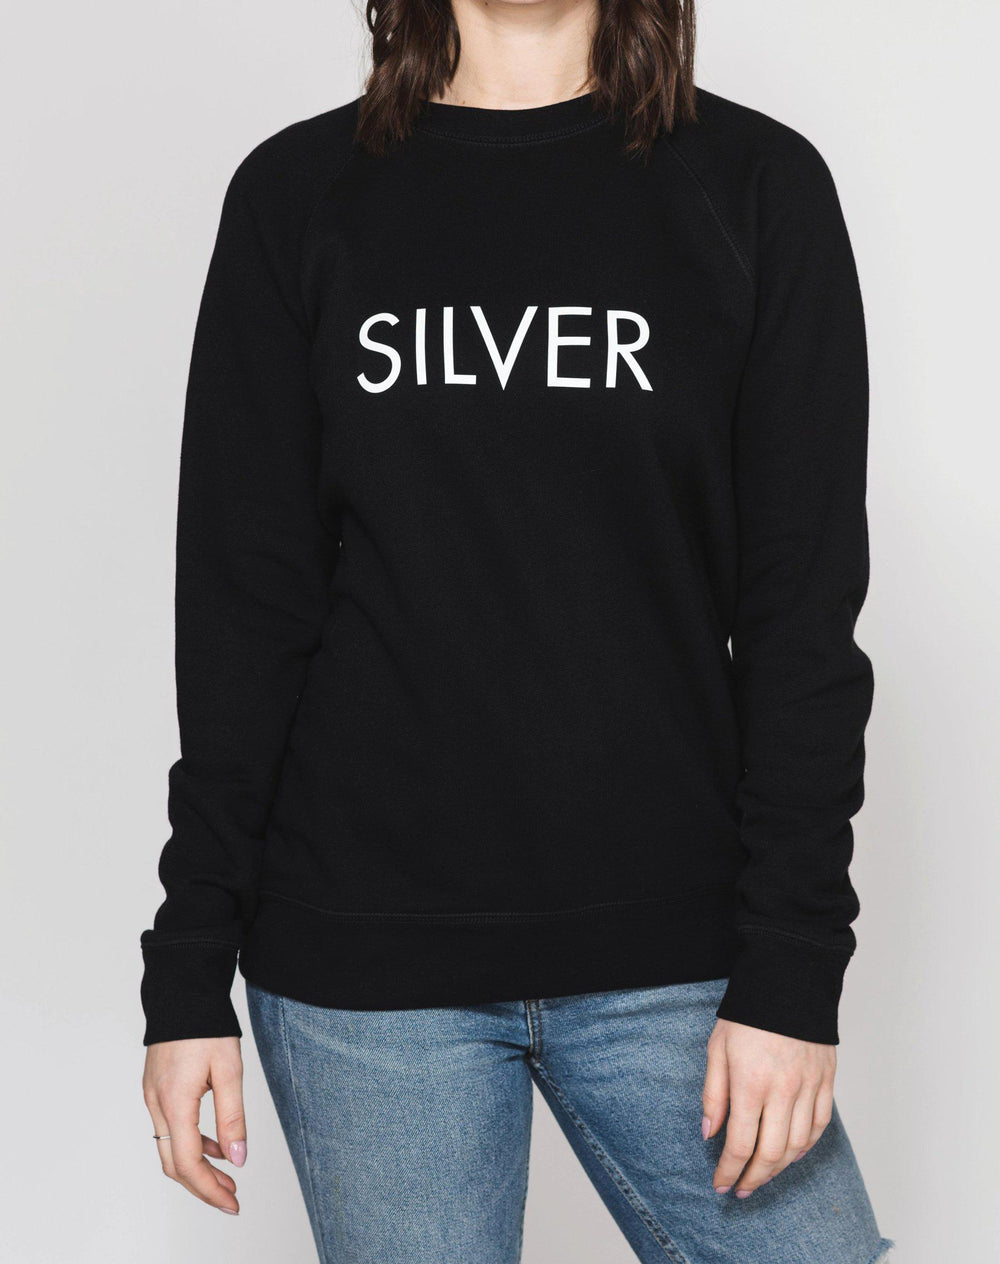 Brunette The Label Silver Classic Crew Neck Sweatshirt-The Trendy Walrus